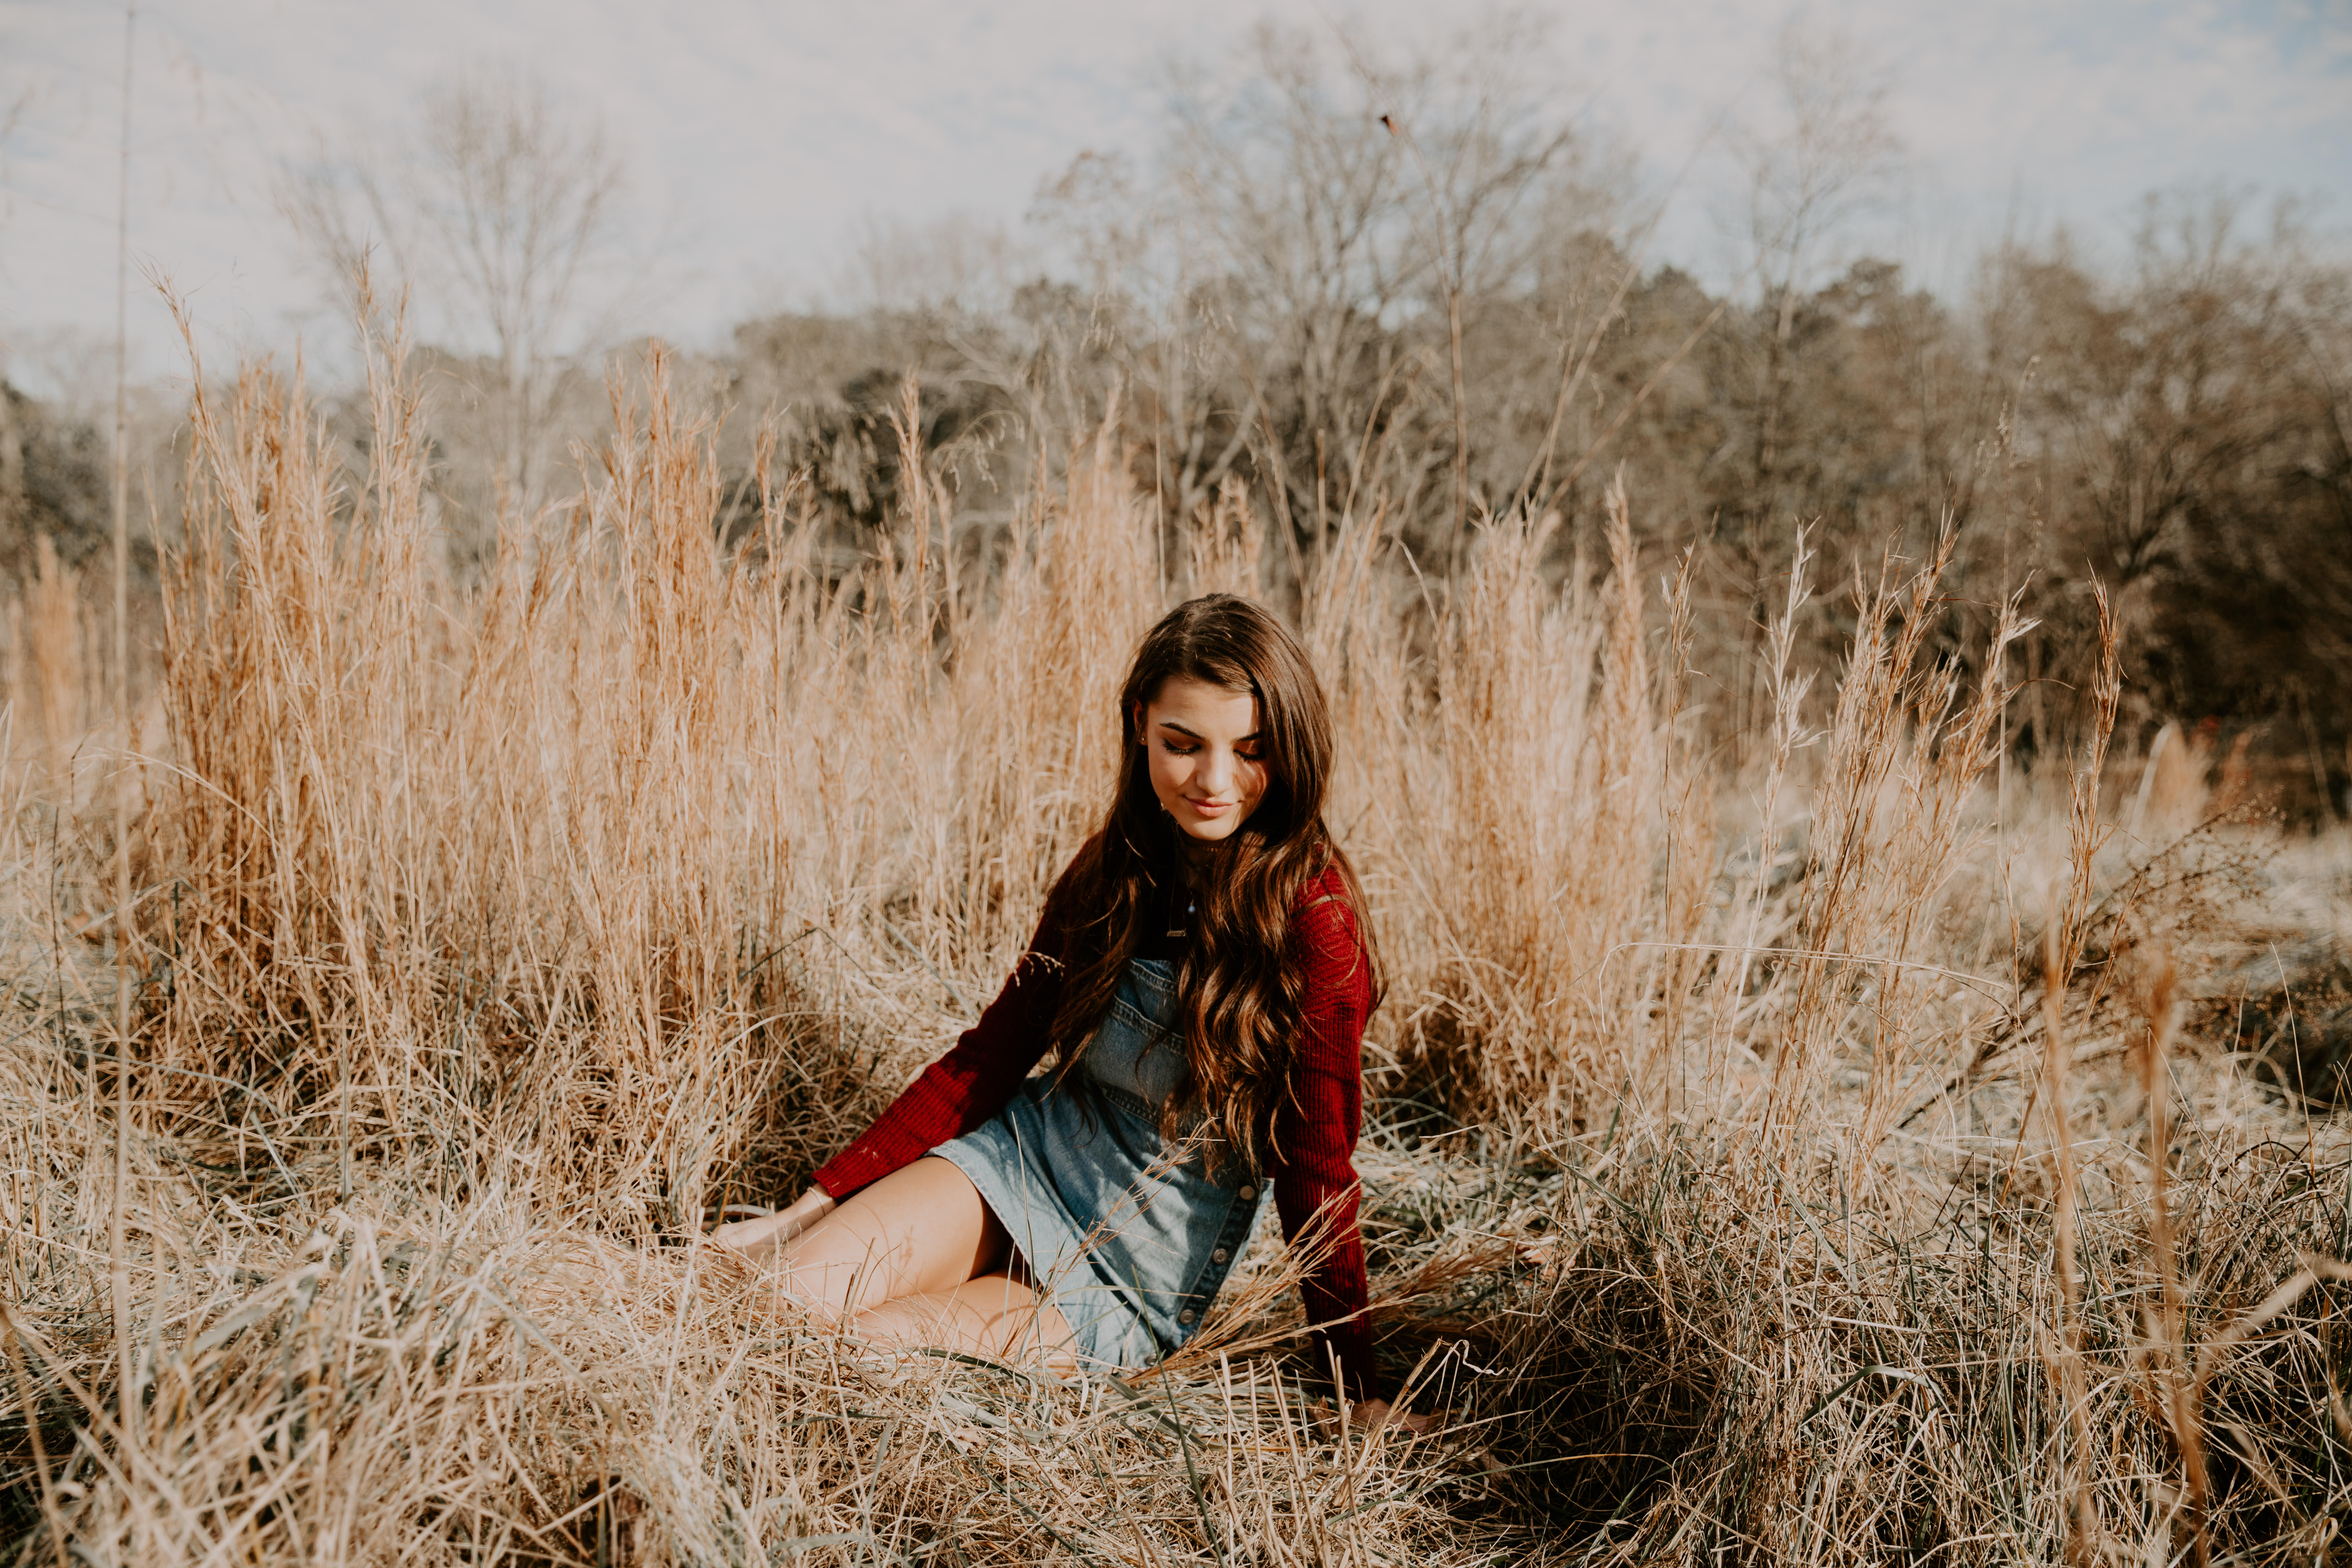 Meghan H. fence red longsleeve overalls open field pose inspiration model senior pictures Atlanta photographer smiling white house leaning Olie West bench